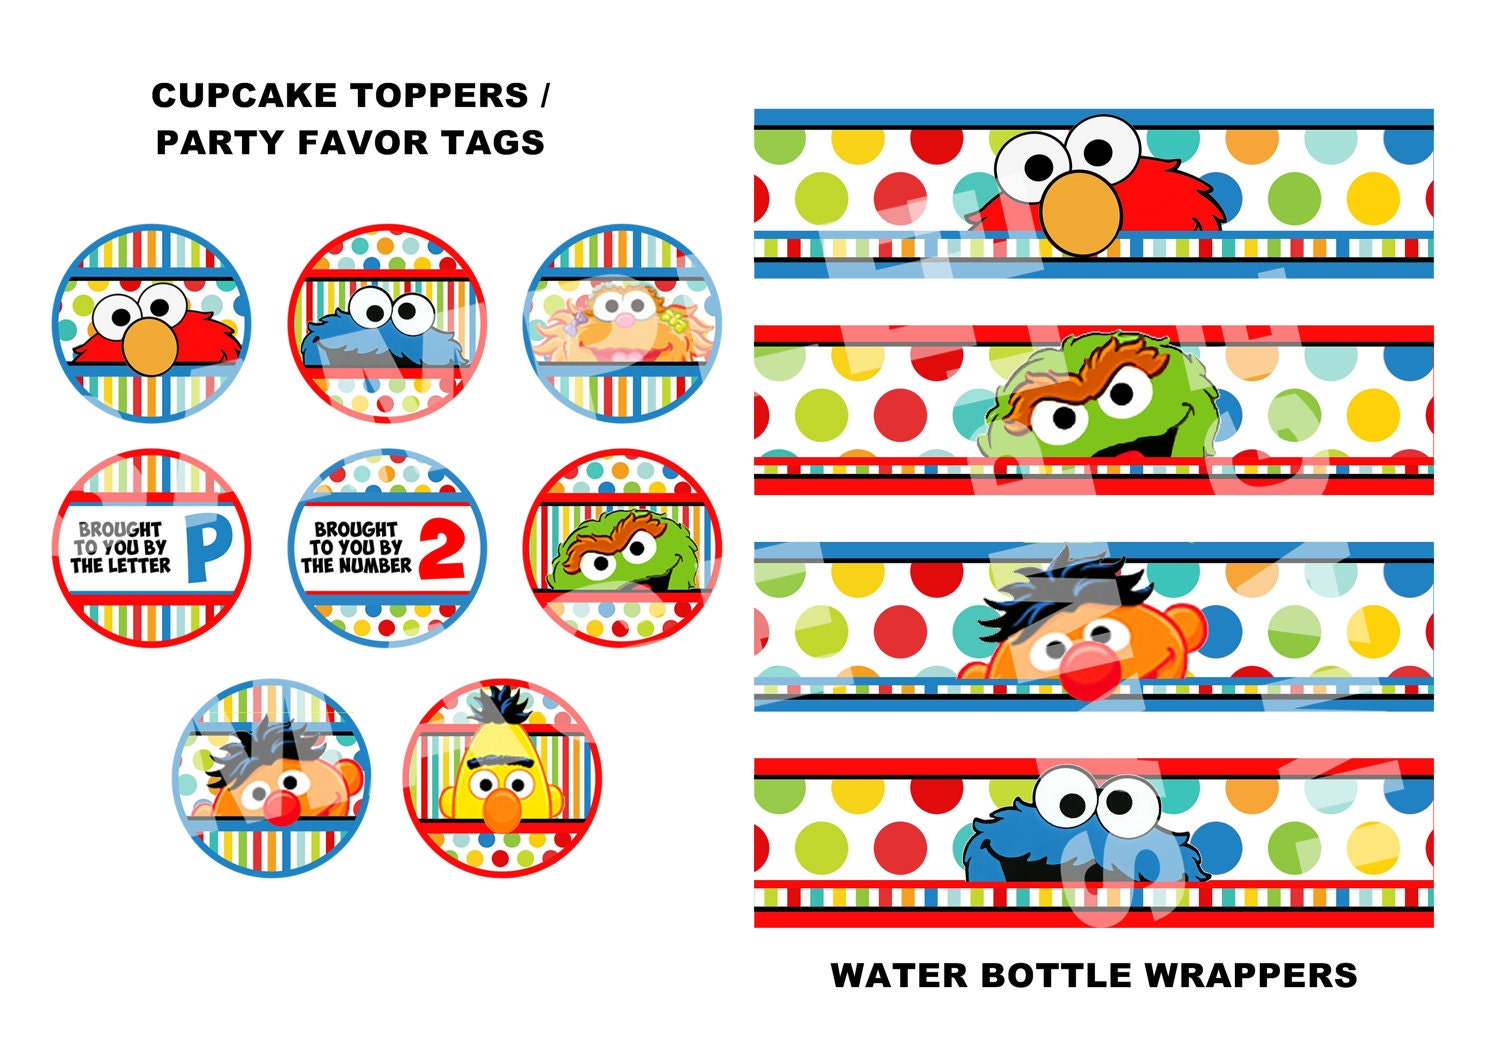 Sesame Street Birthday Party Gift Bags further Doces Para Casamento also Corporate Events Decor in addition Cowboy Birthday Party Ideas in addition Sesame Street Birthday Party. on oscar party favor ideas